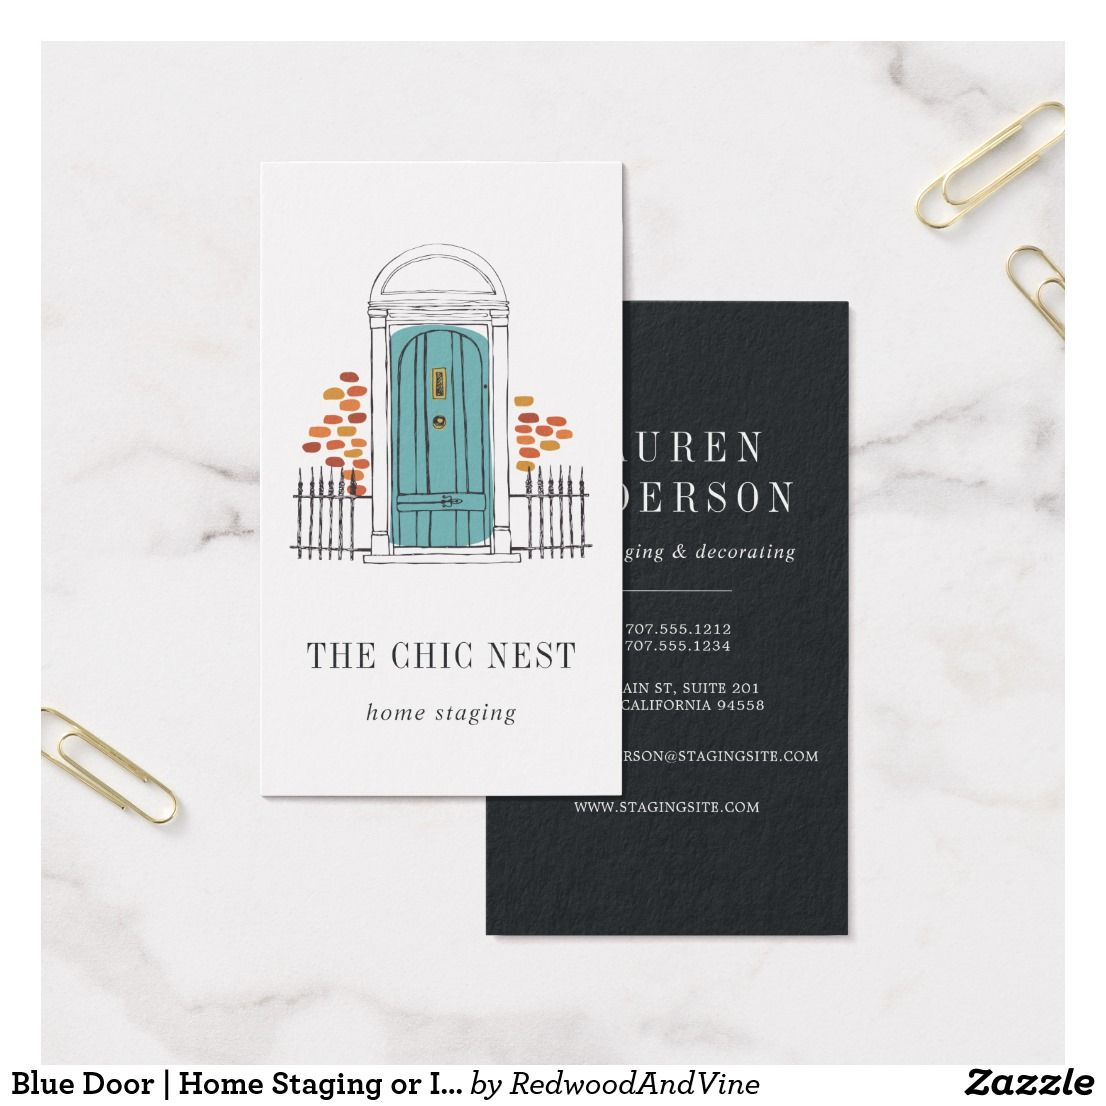 Blue Door Home Staging Or Interior Design Business Card Zazzle